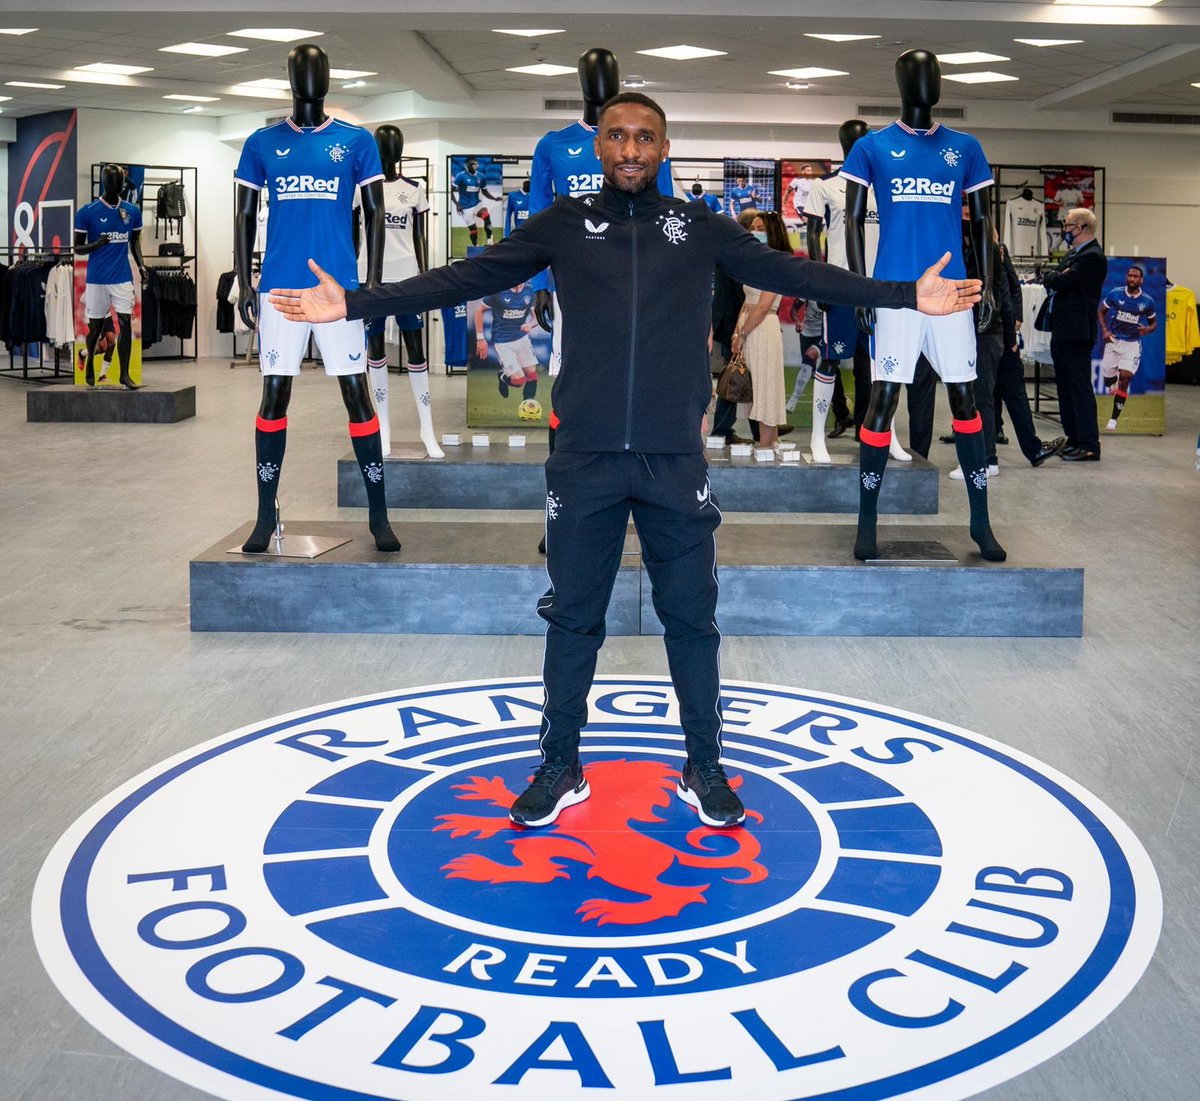 Great to represent the First Team at the opening of the new Rangers store at Ibrox. An historic day for our club. Well done to the boys at Castore too. The support of our fans has been incredible. 💙